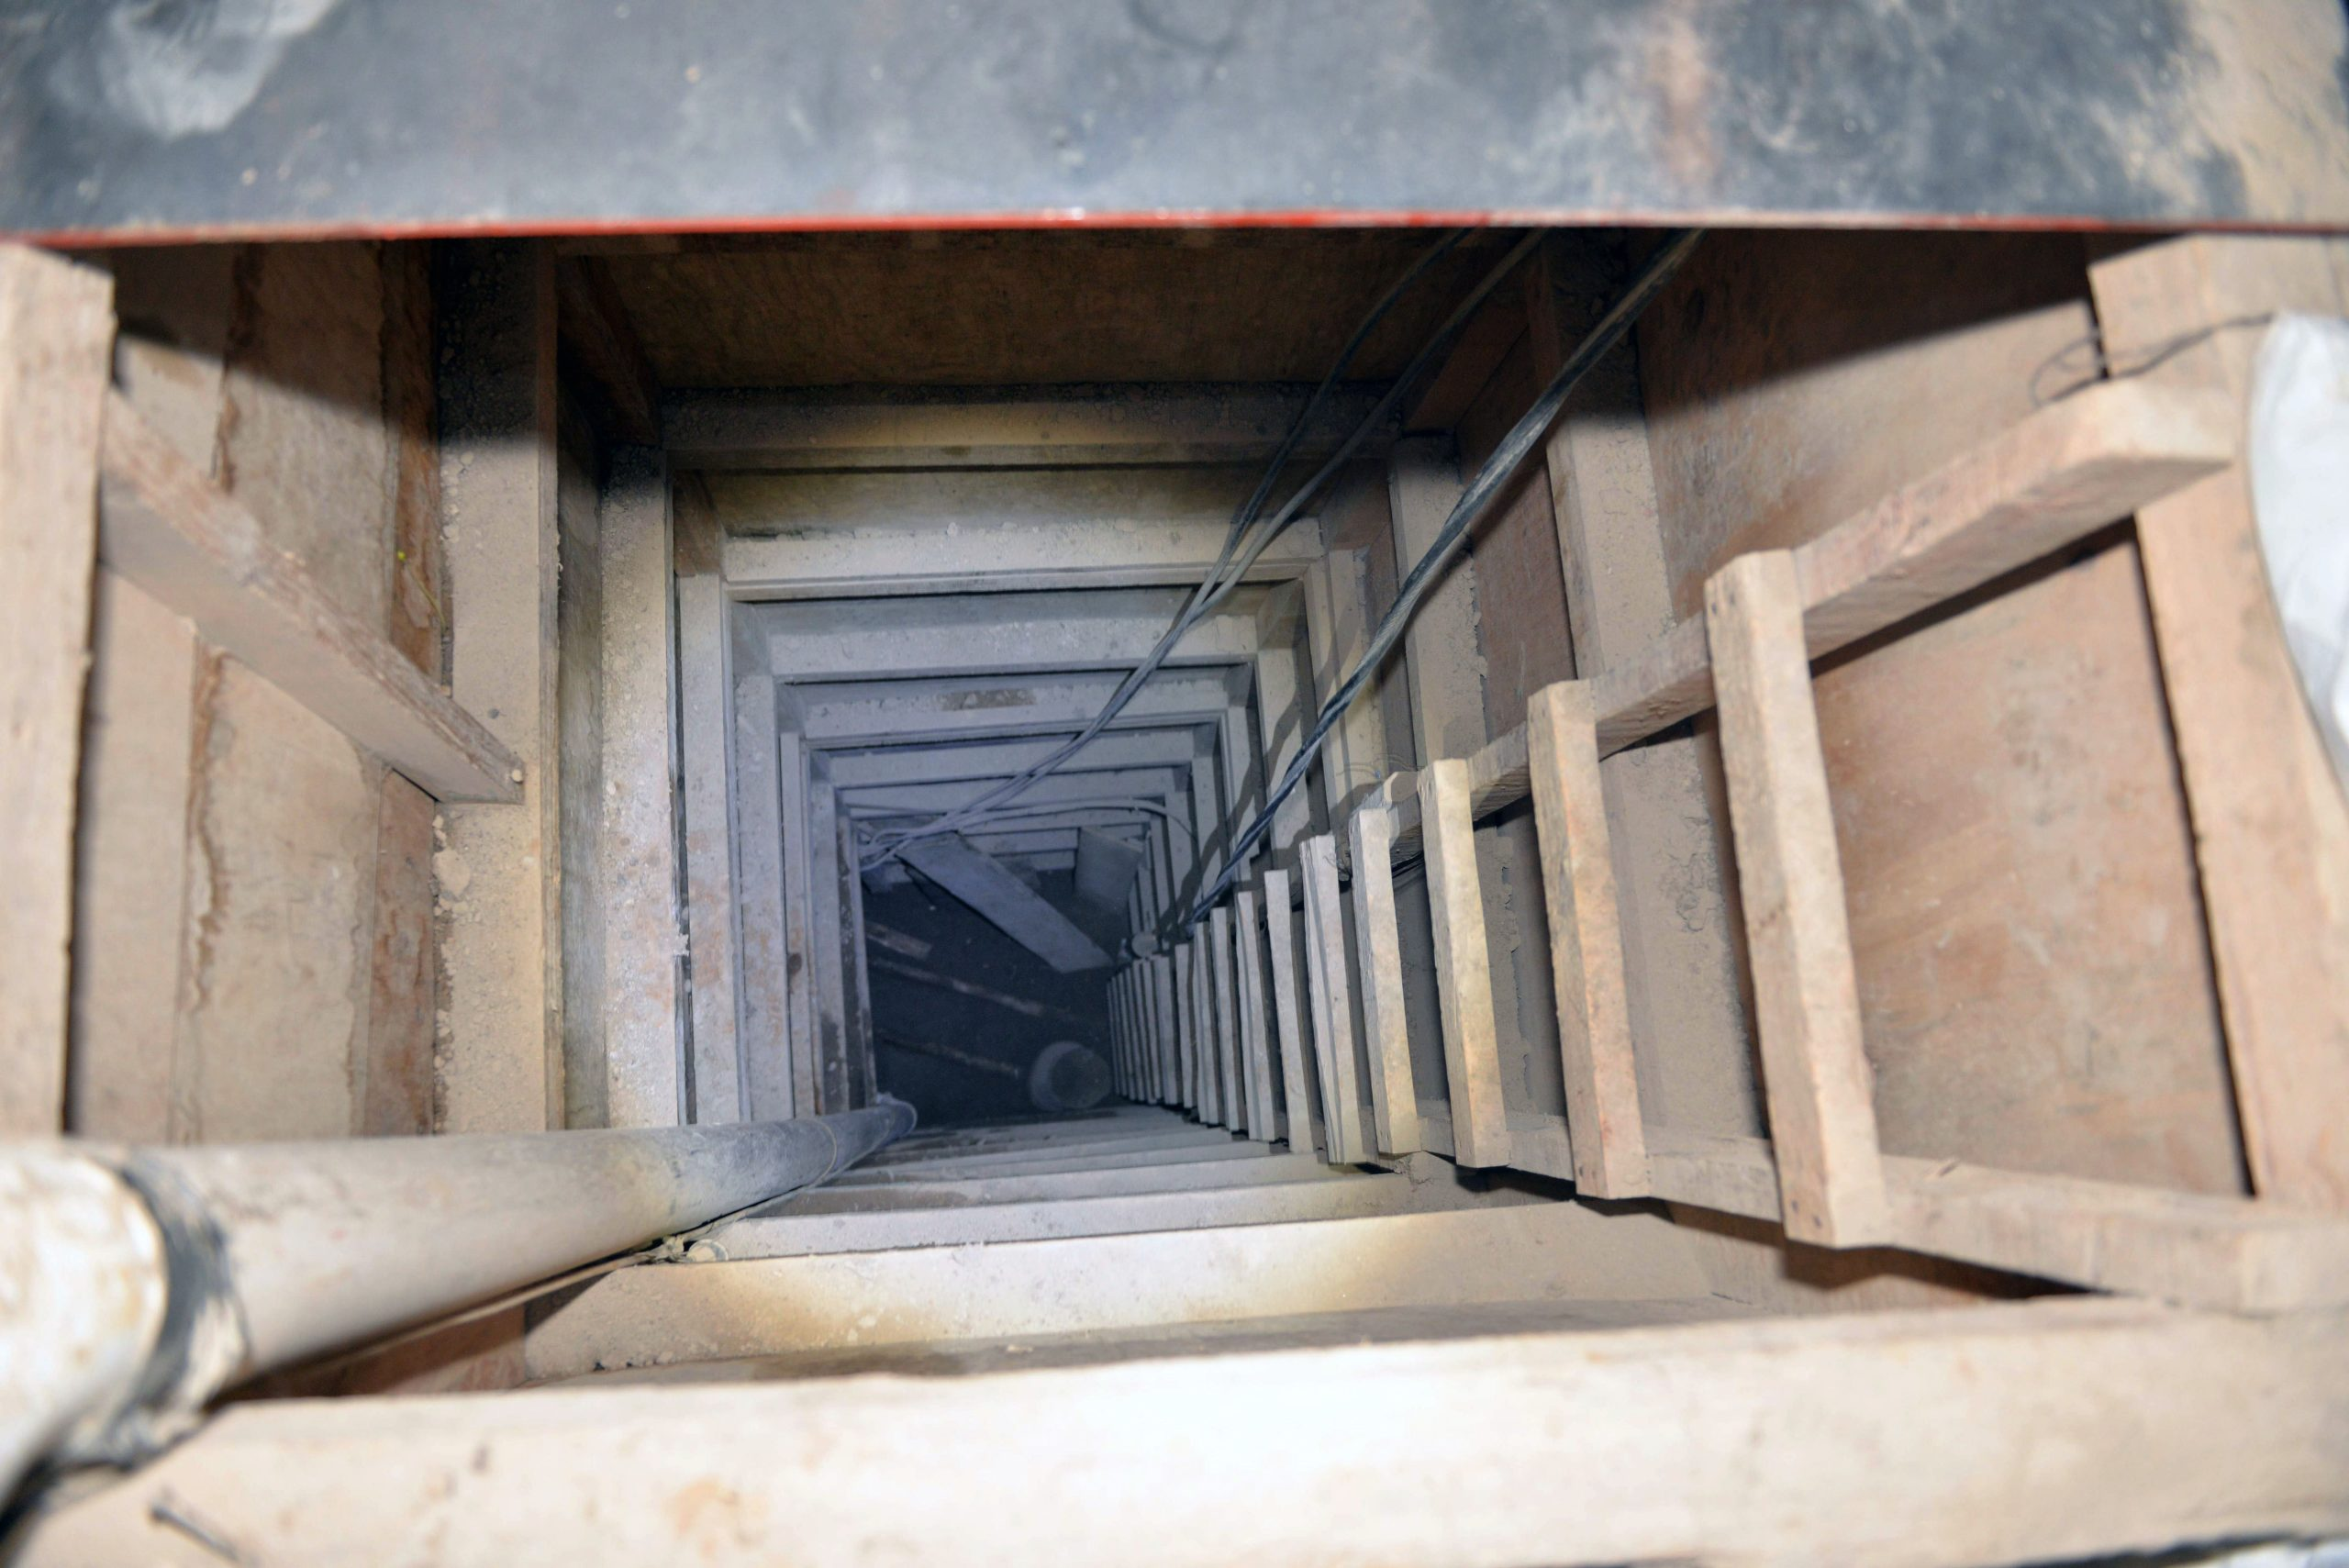 """Picture of the presumed end of the tunnel through which Mexican drug lord Joaquin """"El Chapo"""" Guzman might have escaped from the Altiplano prison, in a house in Almoloya de Juarez, Mexico, on July 14, 2015. (MARIO VAZQUEZ/AFP via Getty Images)"""